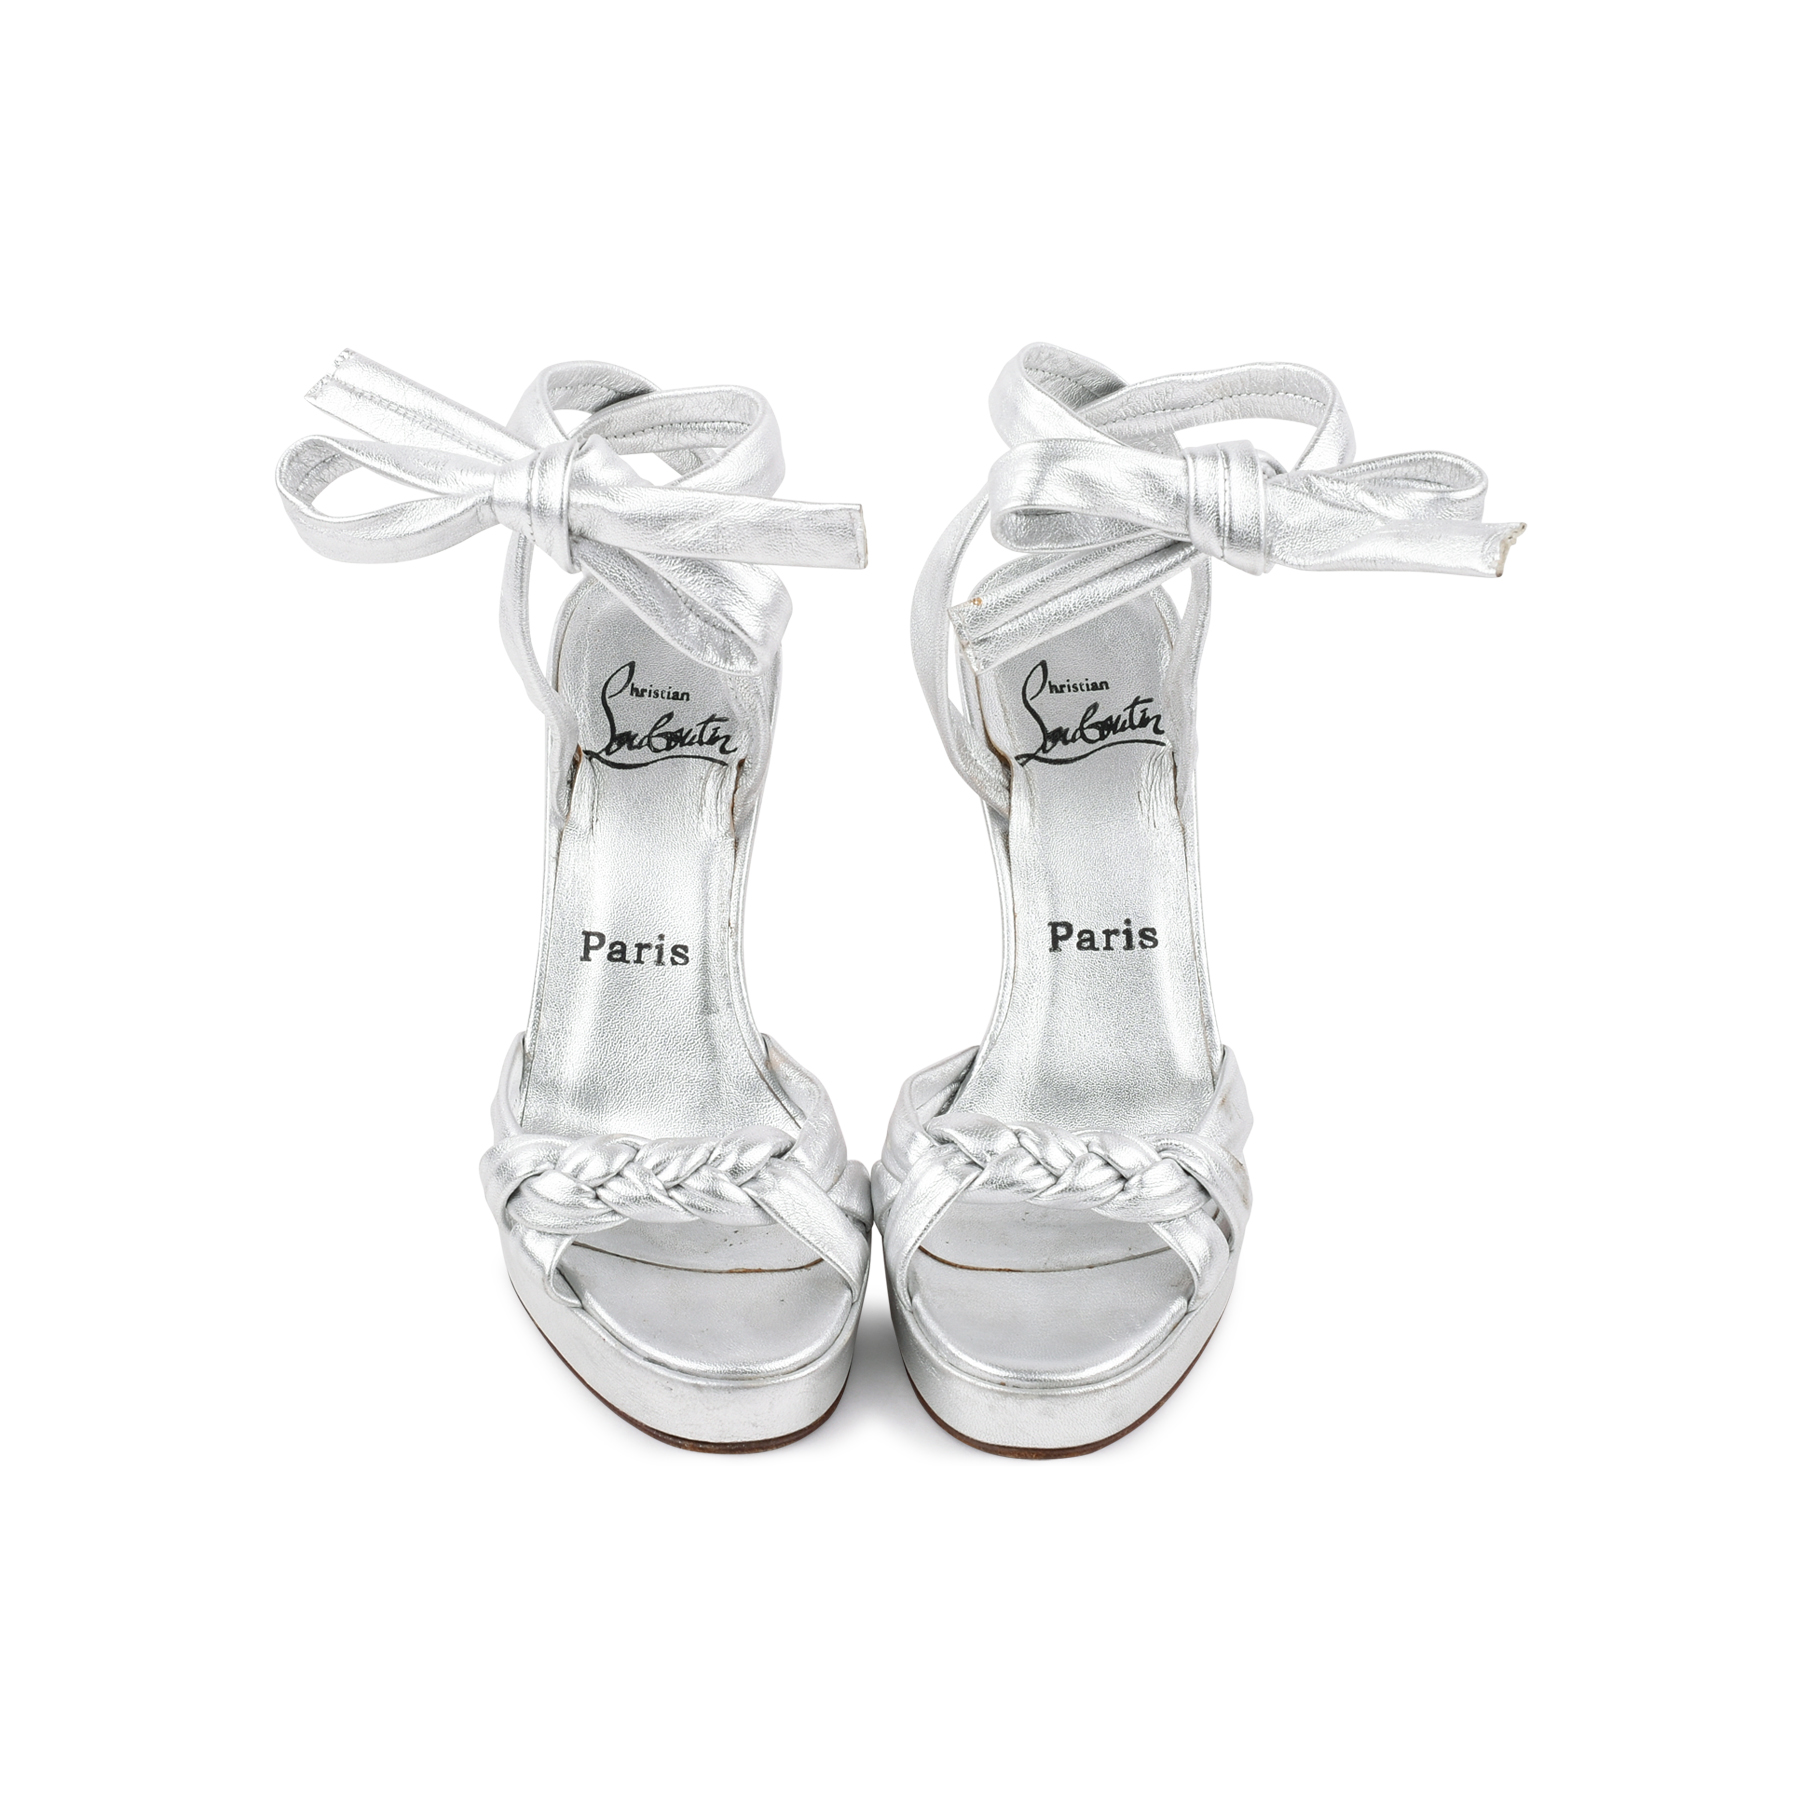 b089ed2e560ef7 Authentic Second Hand Christian Louboutin Silver Braided Tie Sandals  (PSS-080-00245)